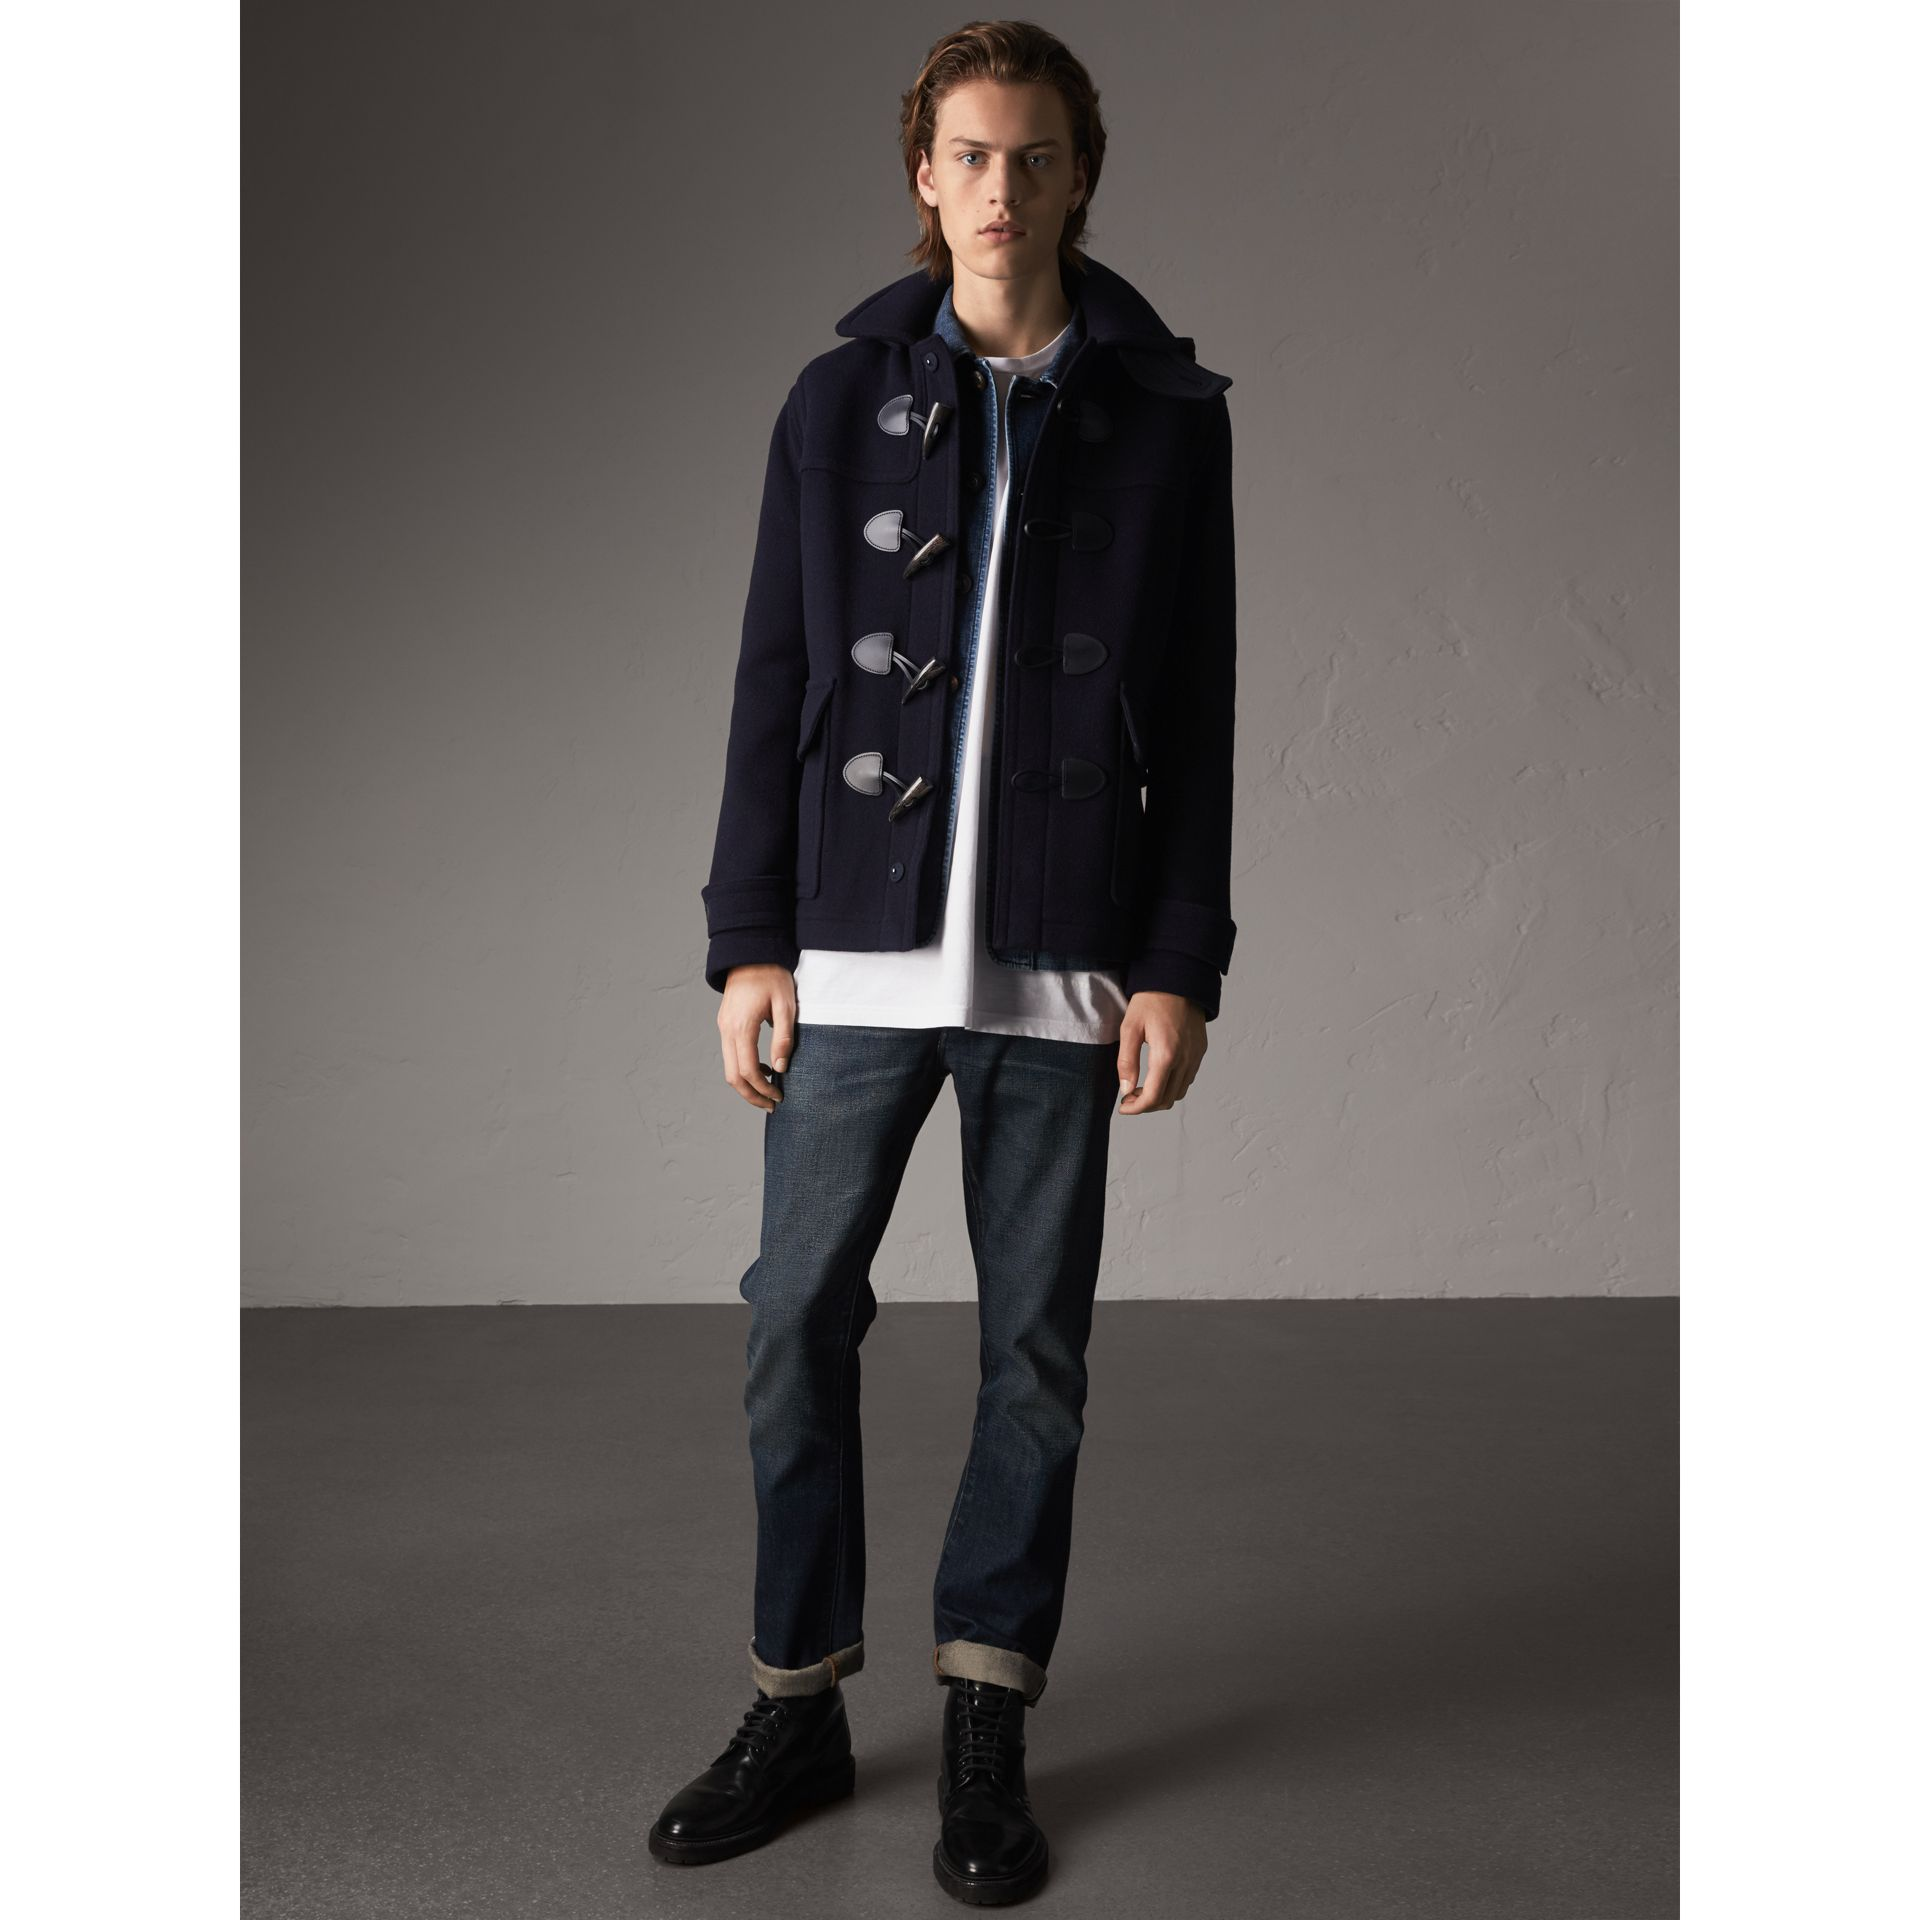 Wool Duffle Jacket with Detachable Hood in Navy - Men | Burberry - gallery image 6